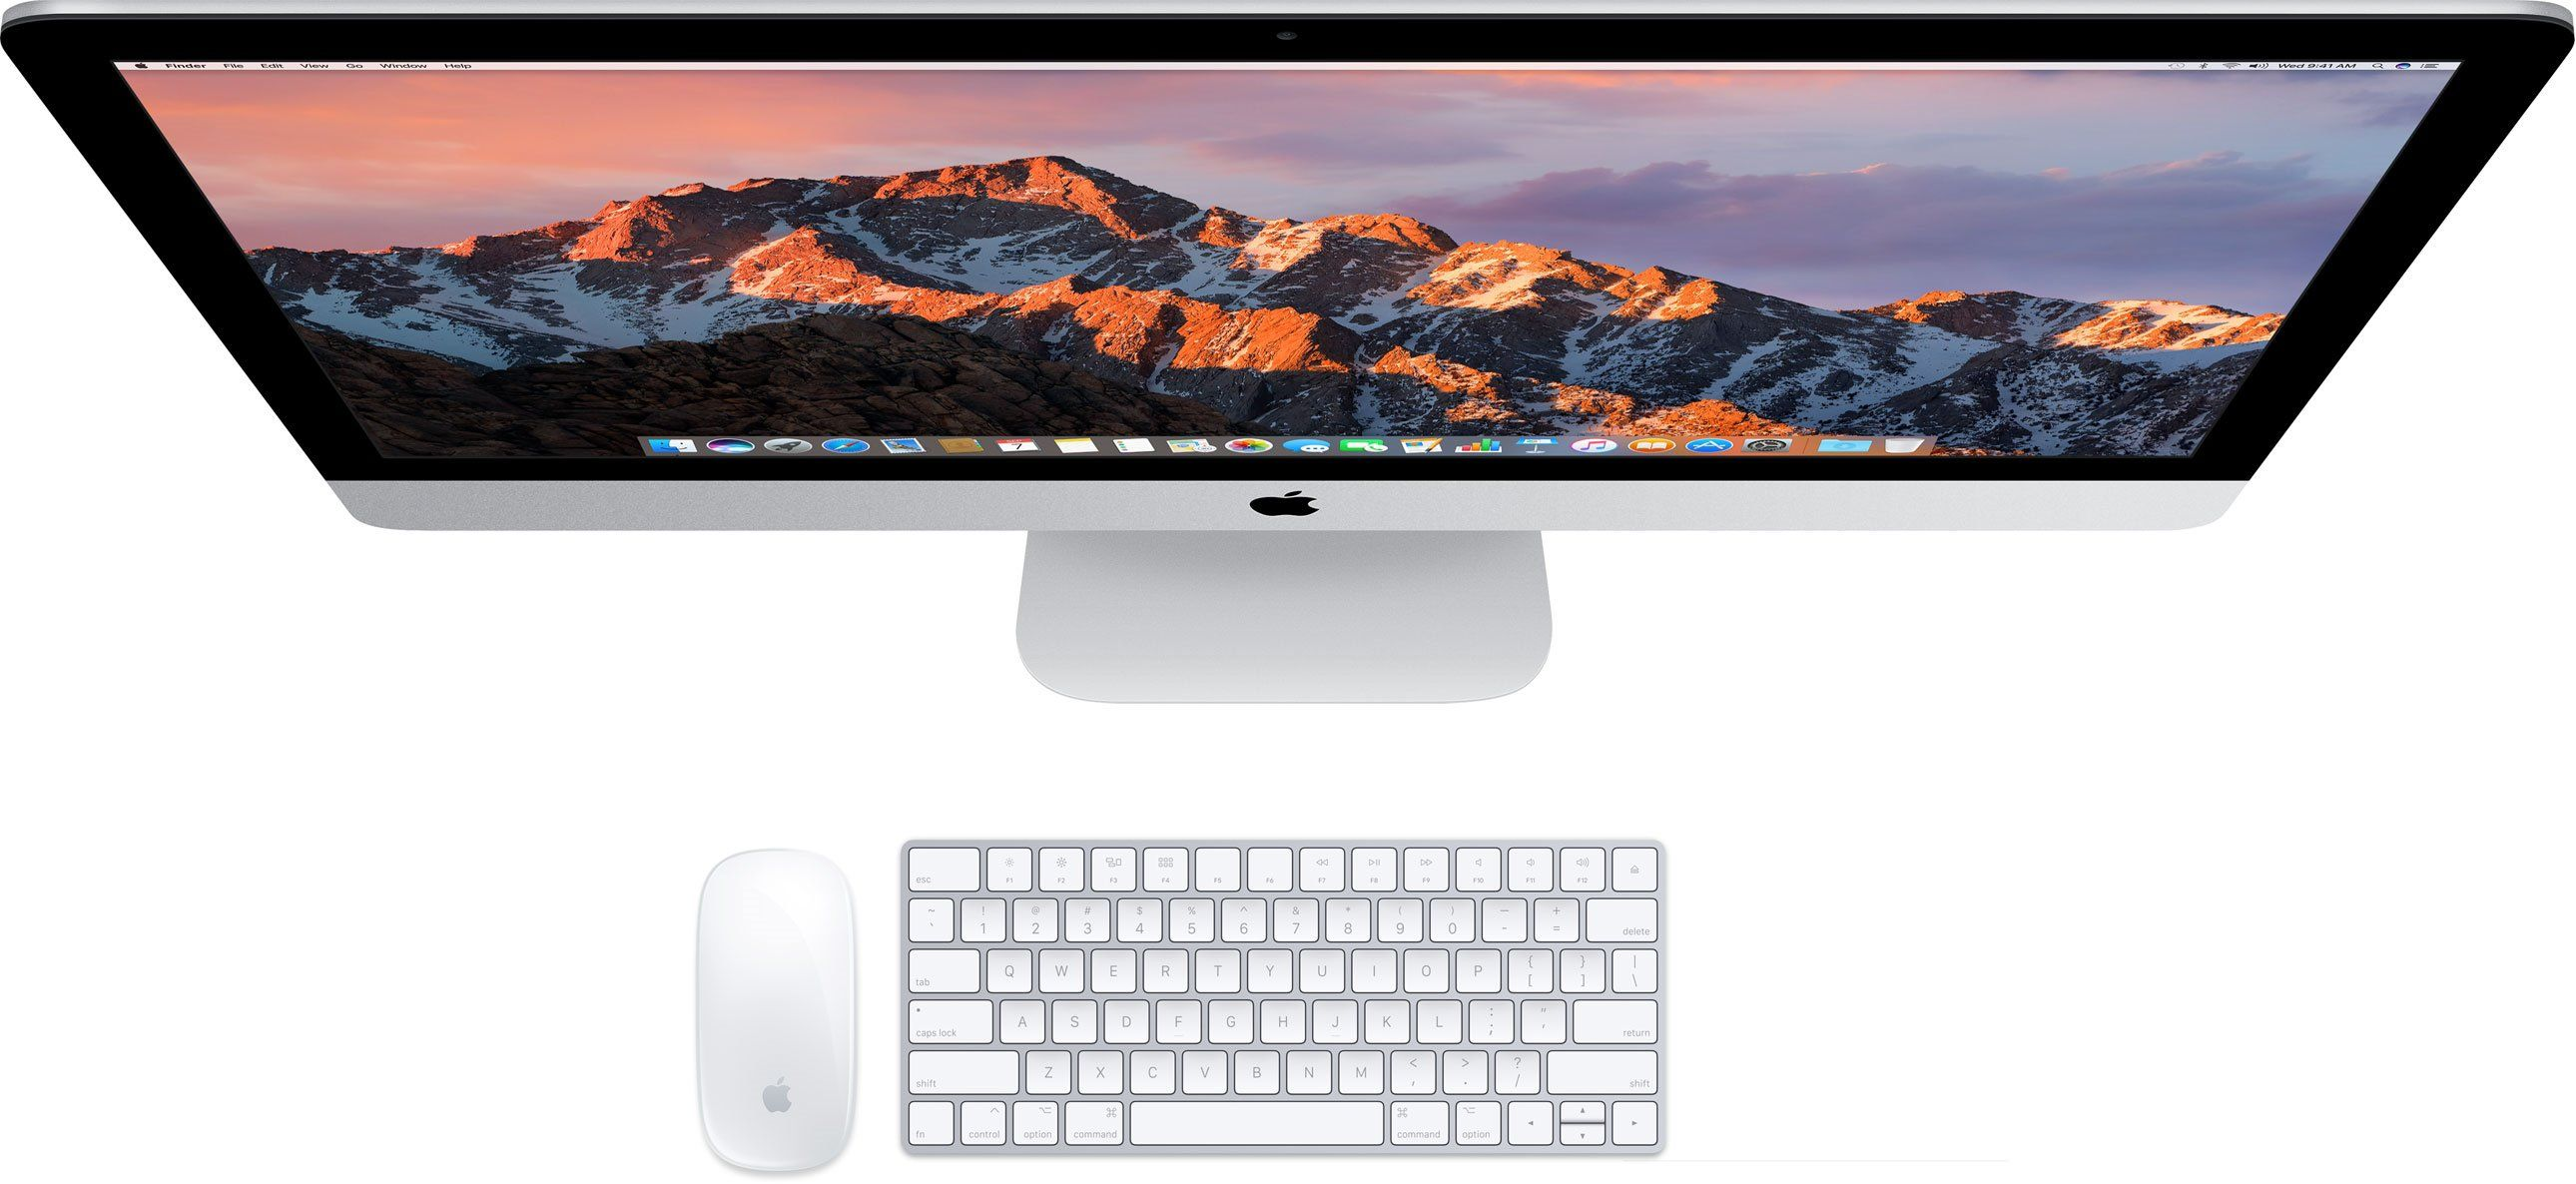 "Моноблок Apple iMac 21.5"" Core i5 2.3 ГГц, 8 ГБ, 1 ТБ, Intel Iris Plus 640 (MMQA2), картинка 2"